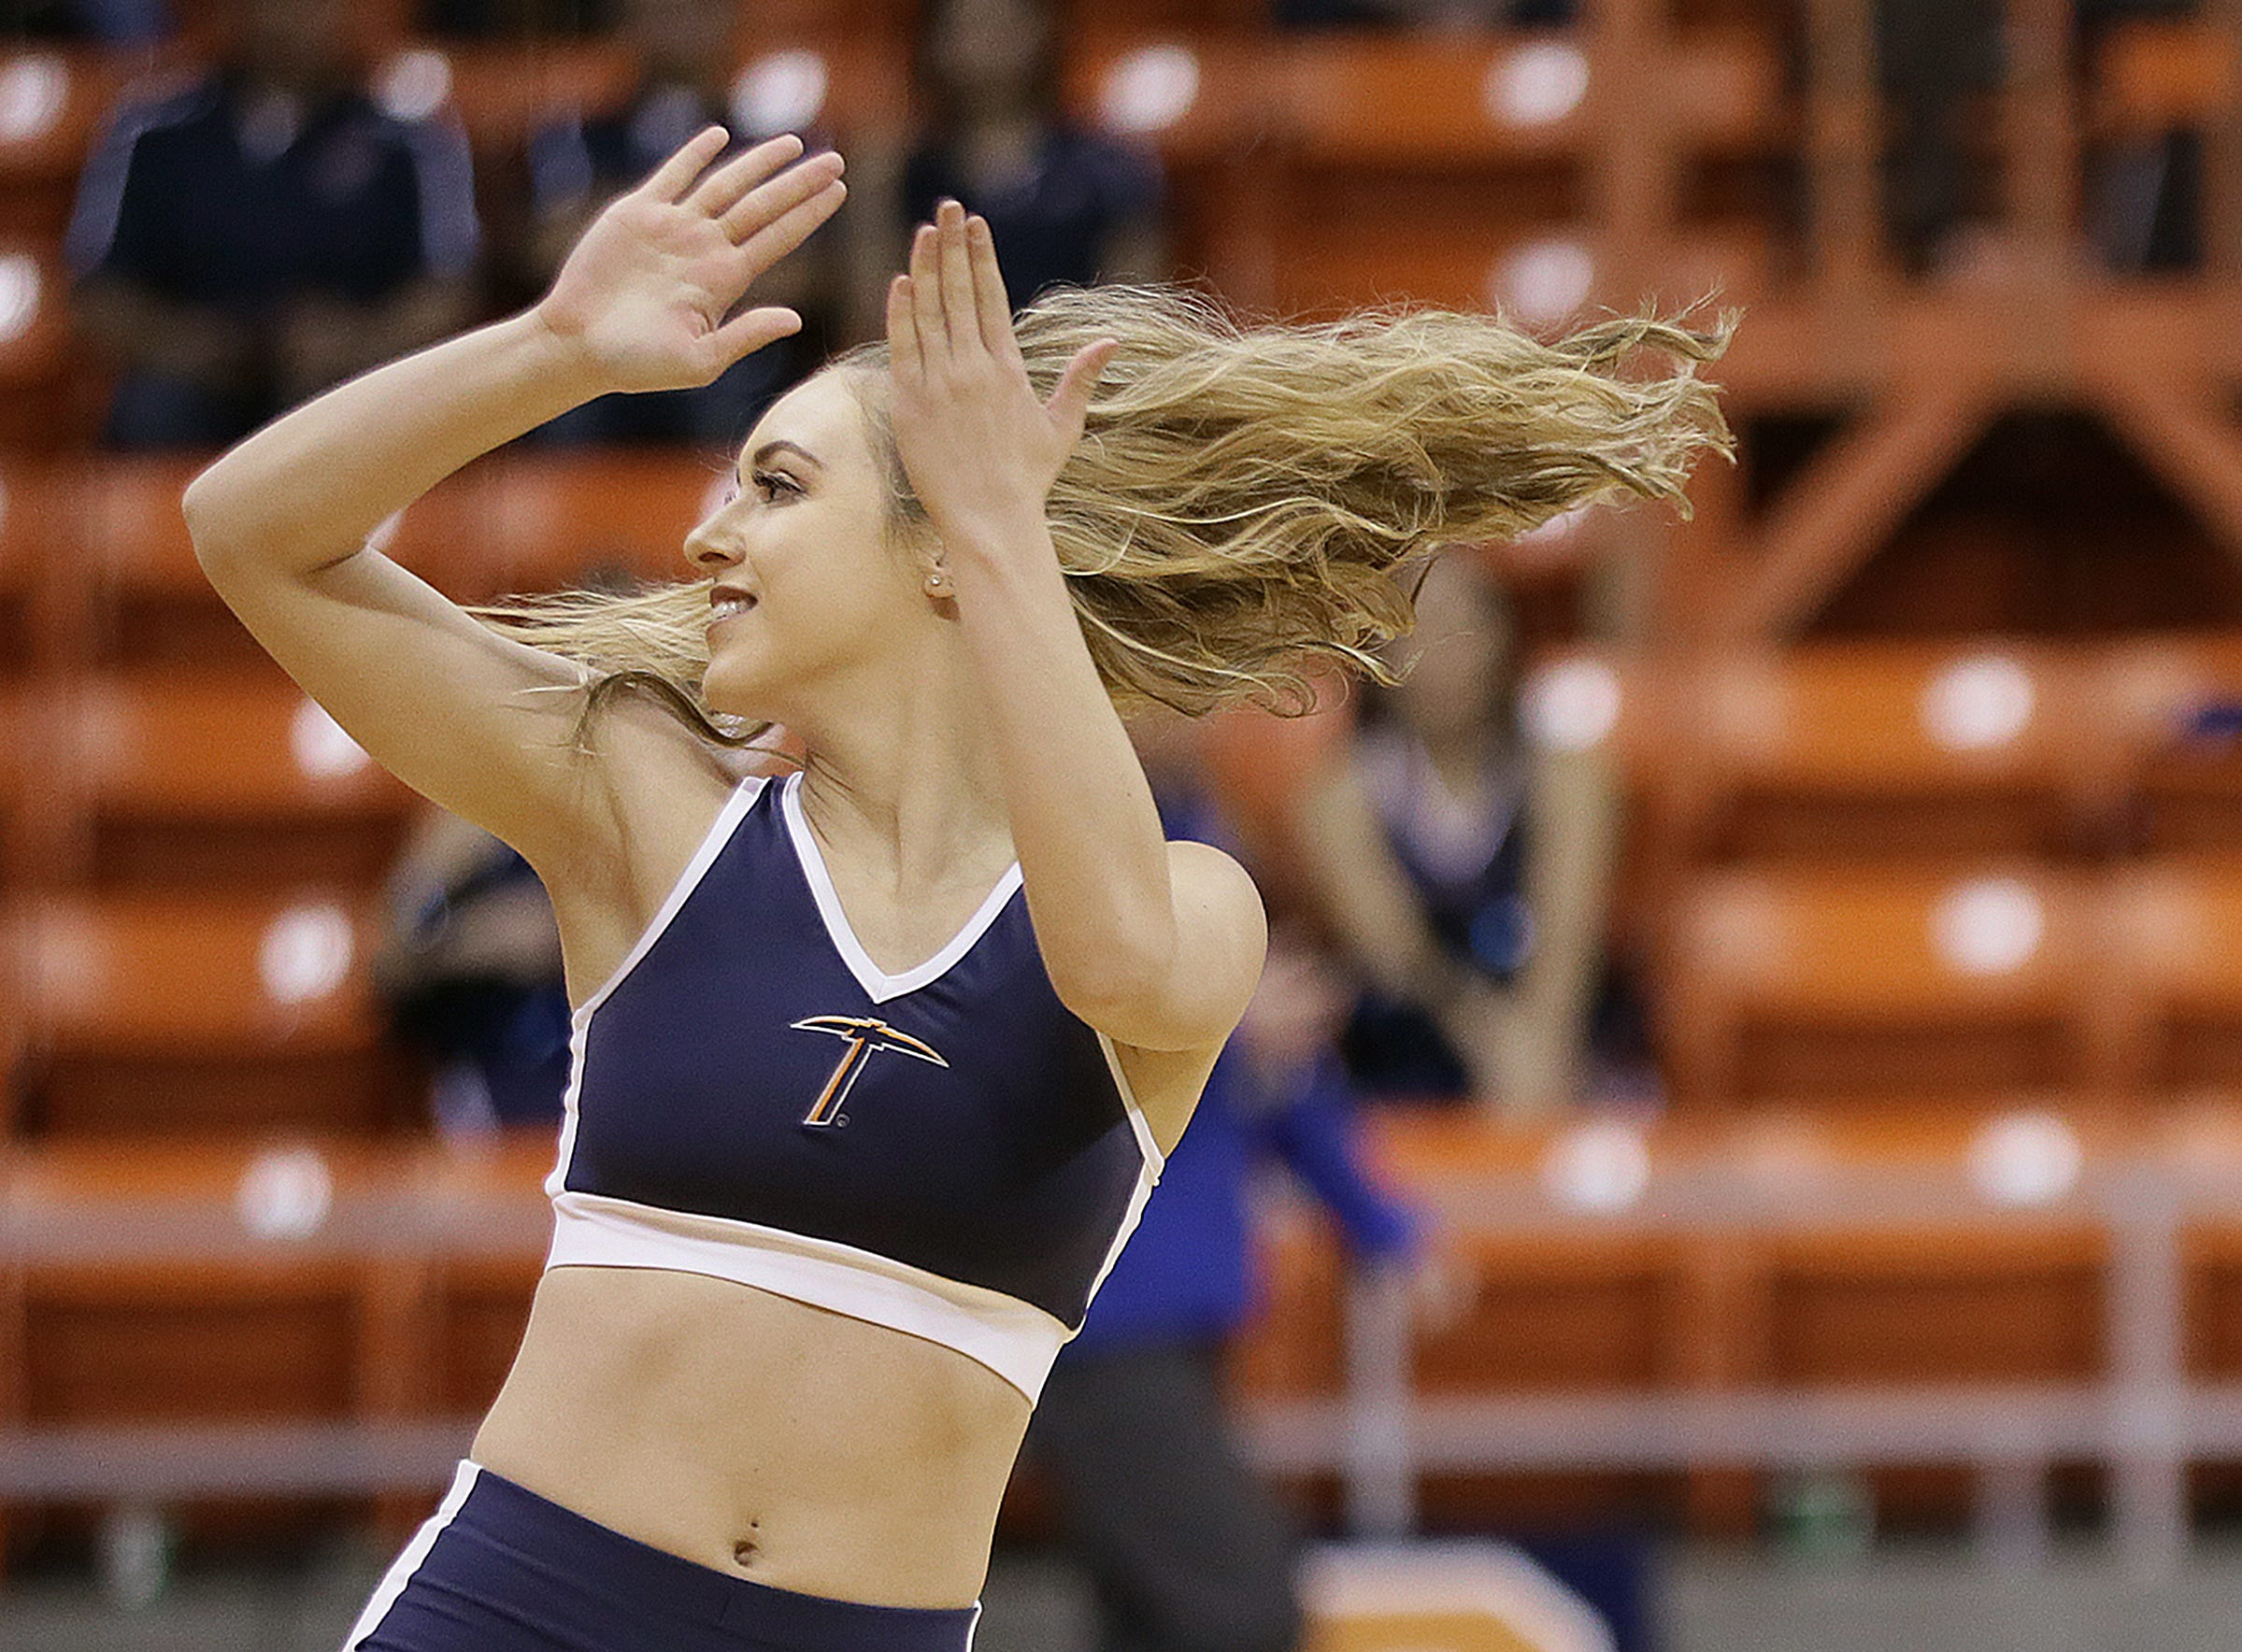 UTEP falls in a close game to North Texas 58-51 Thursday at the Don Haskins Center.